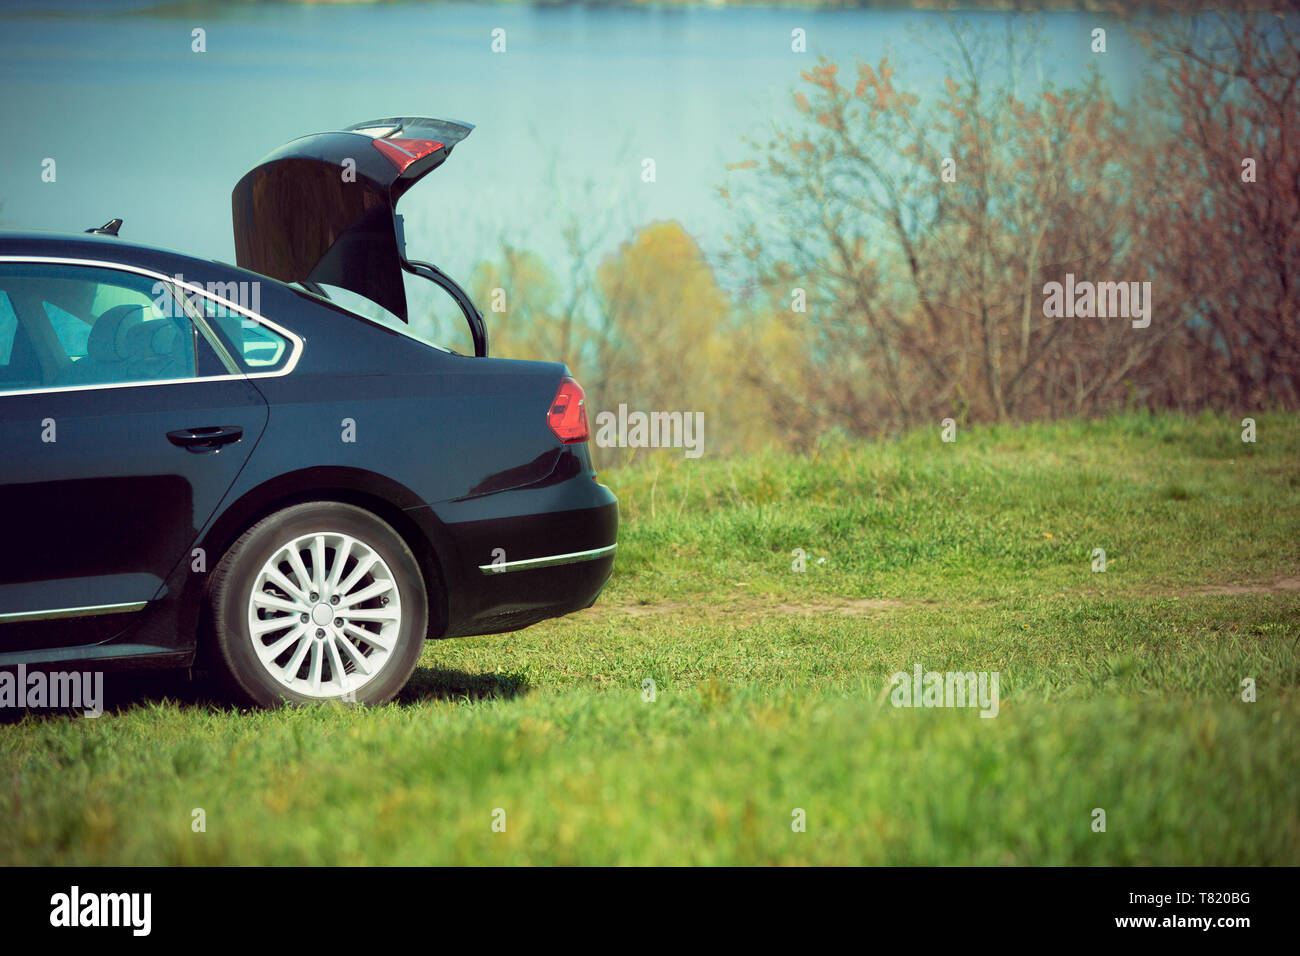 View of modern black car on the river's side in sunny day. Preparing for weekend' trip or journey. Concept of summertime, resort, chilling. - Stock Image